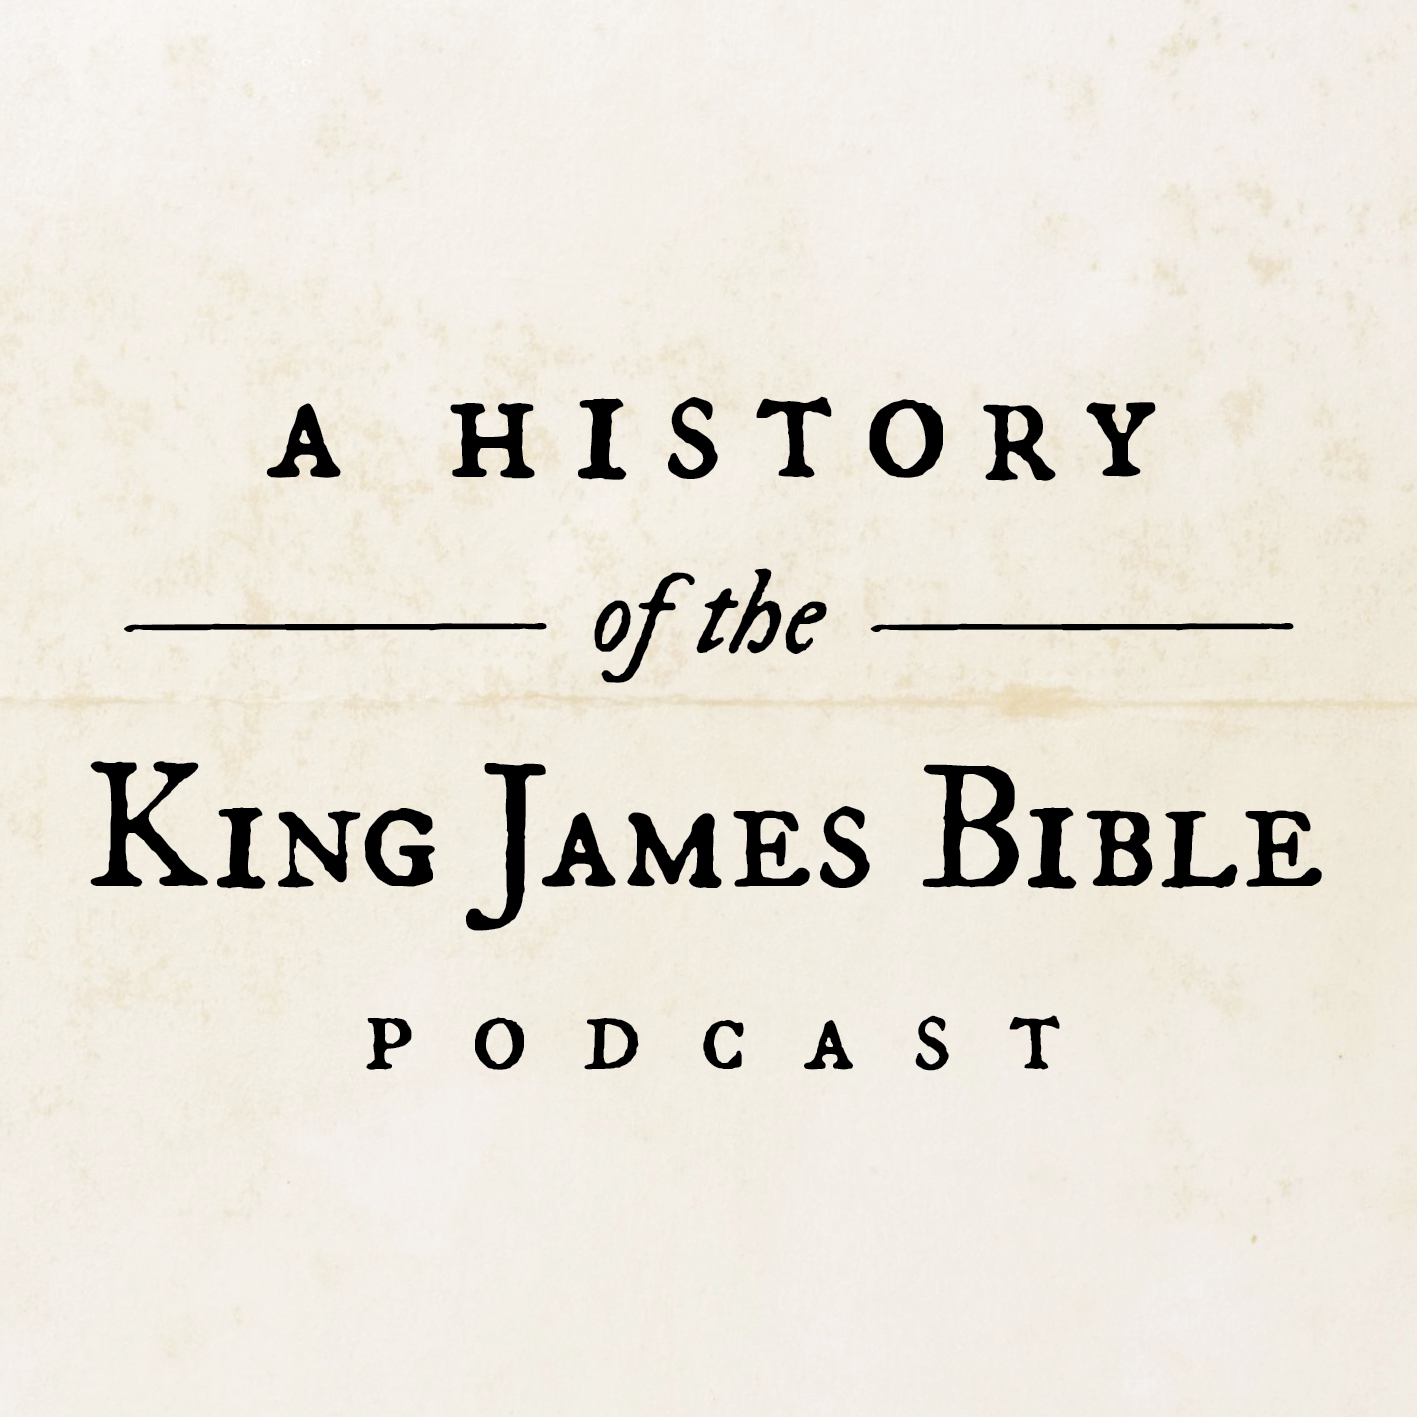 A History of the King James Bible Podcast » Podcast